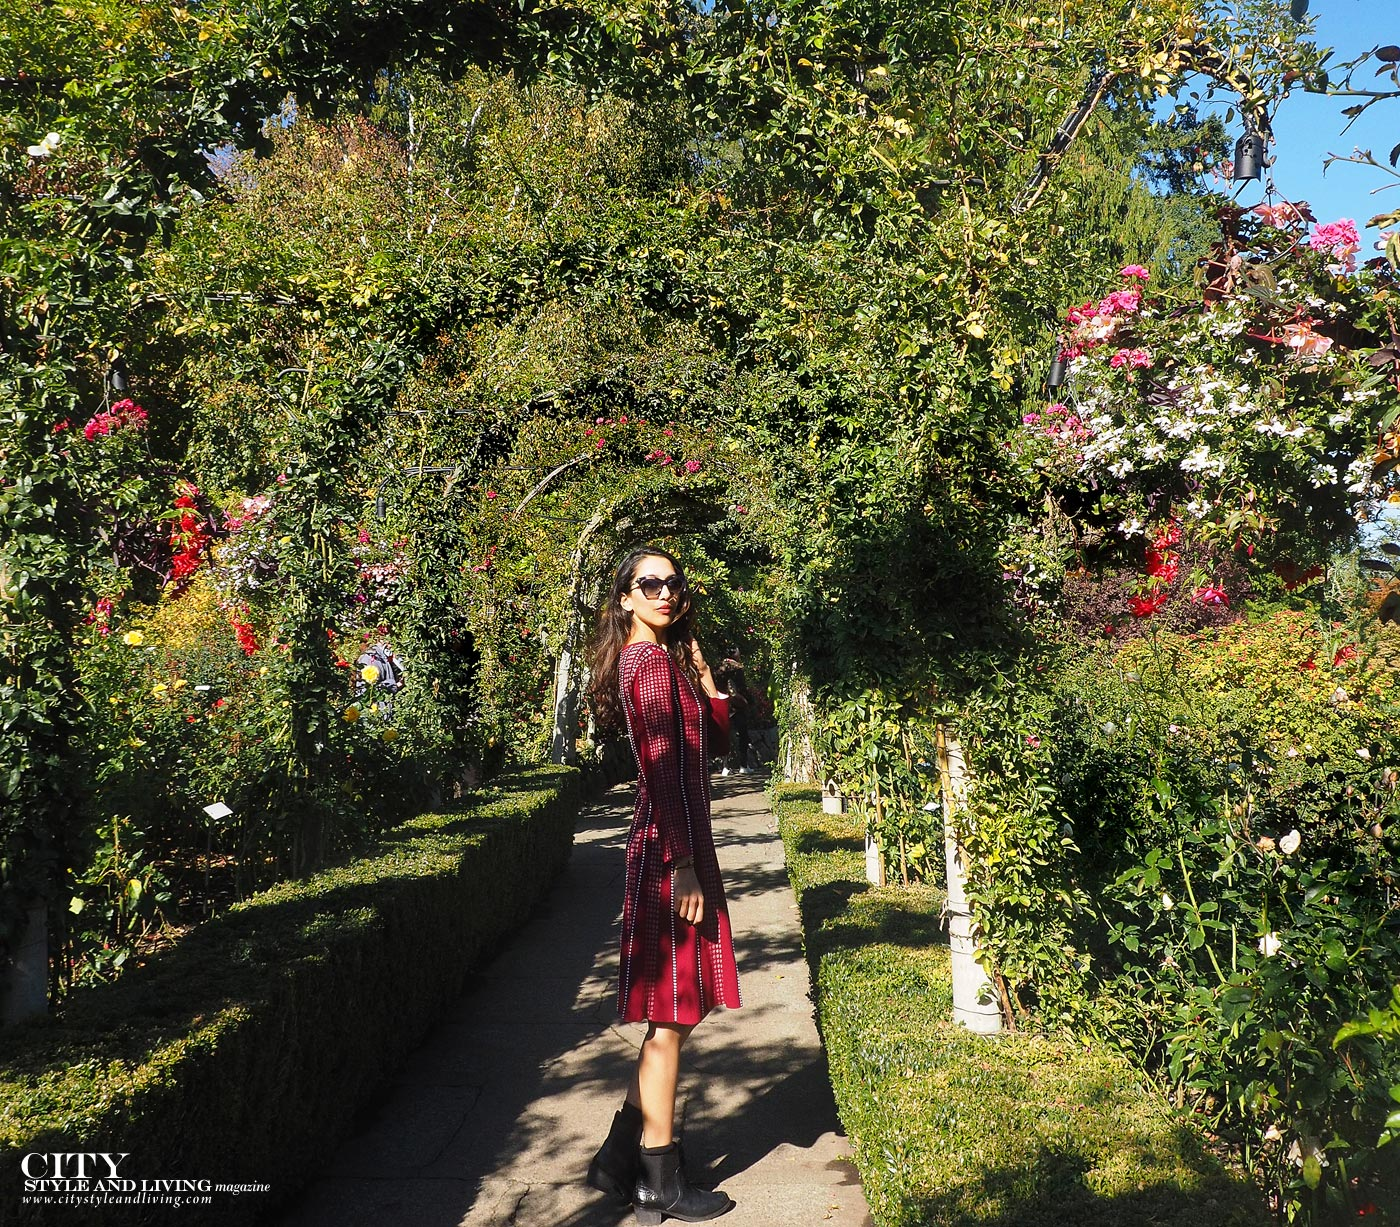 City style and living magazine Editors Notebook style fashion blogger Butchart Gardens Rose Gardens